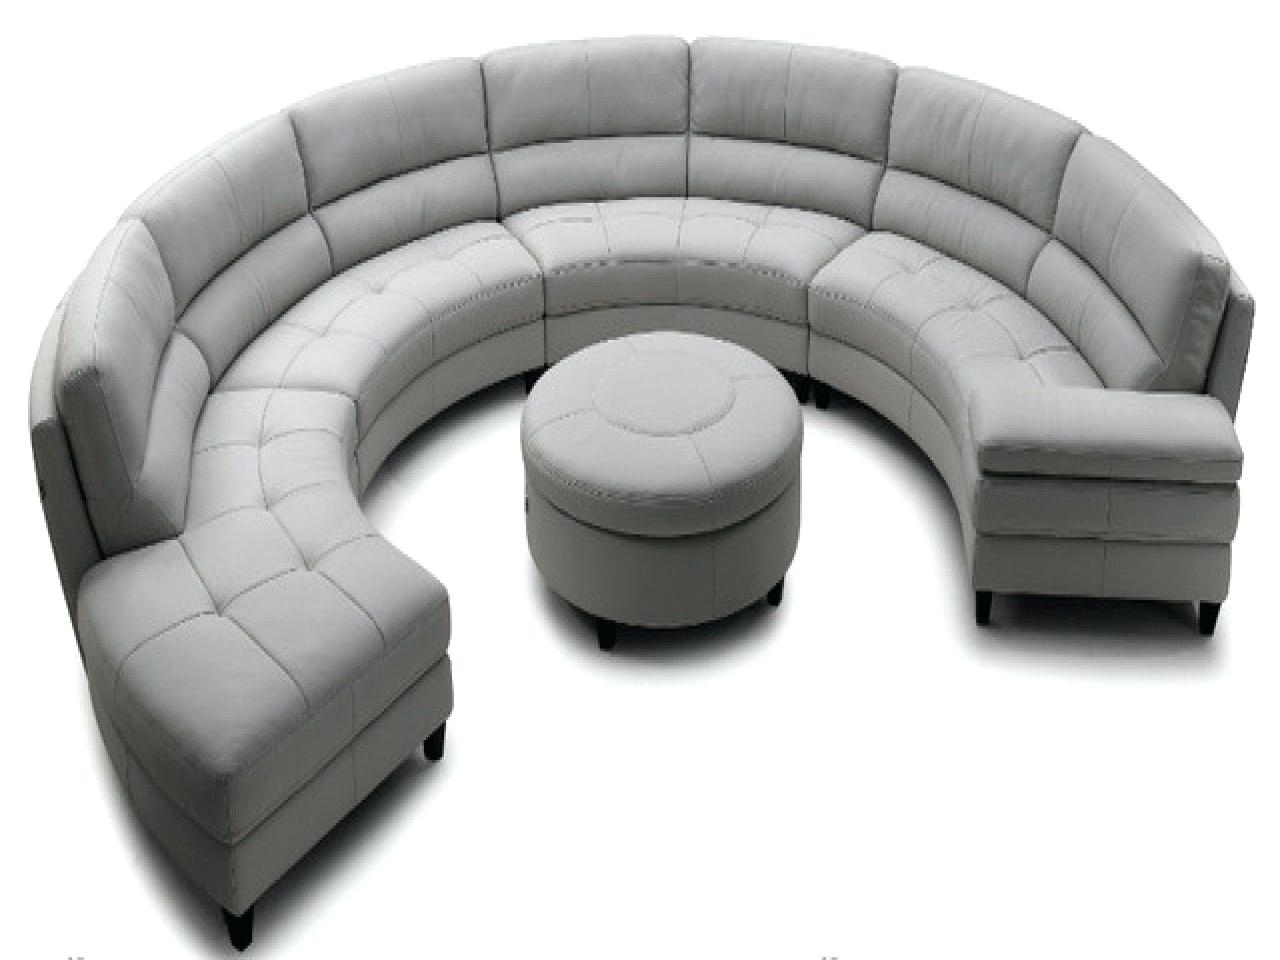 Fashionable Round Sofas With Regard To Circular Sectional Sofa Sa Sas Bed Semi Circle Couches Modern (View 4 of 15)